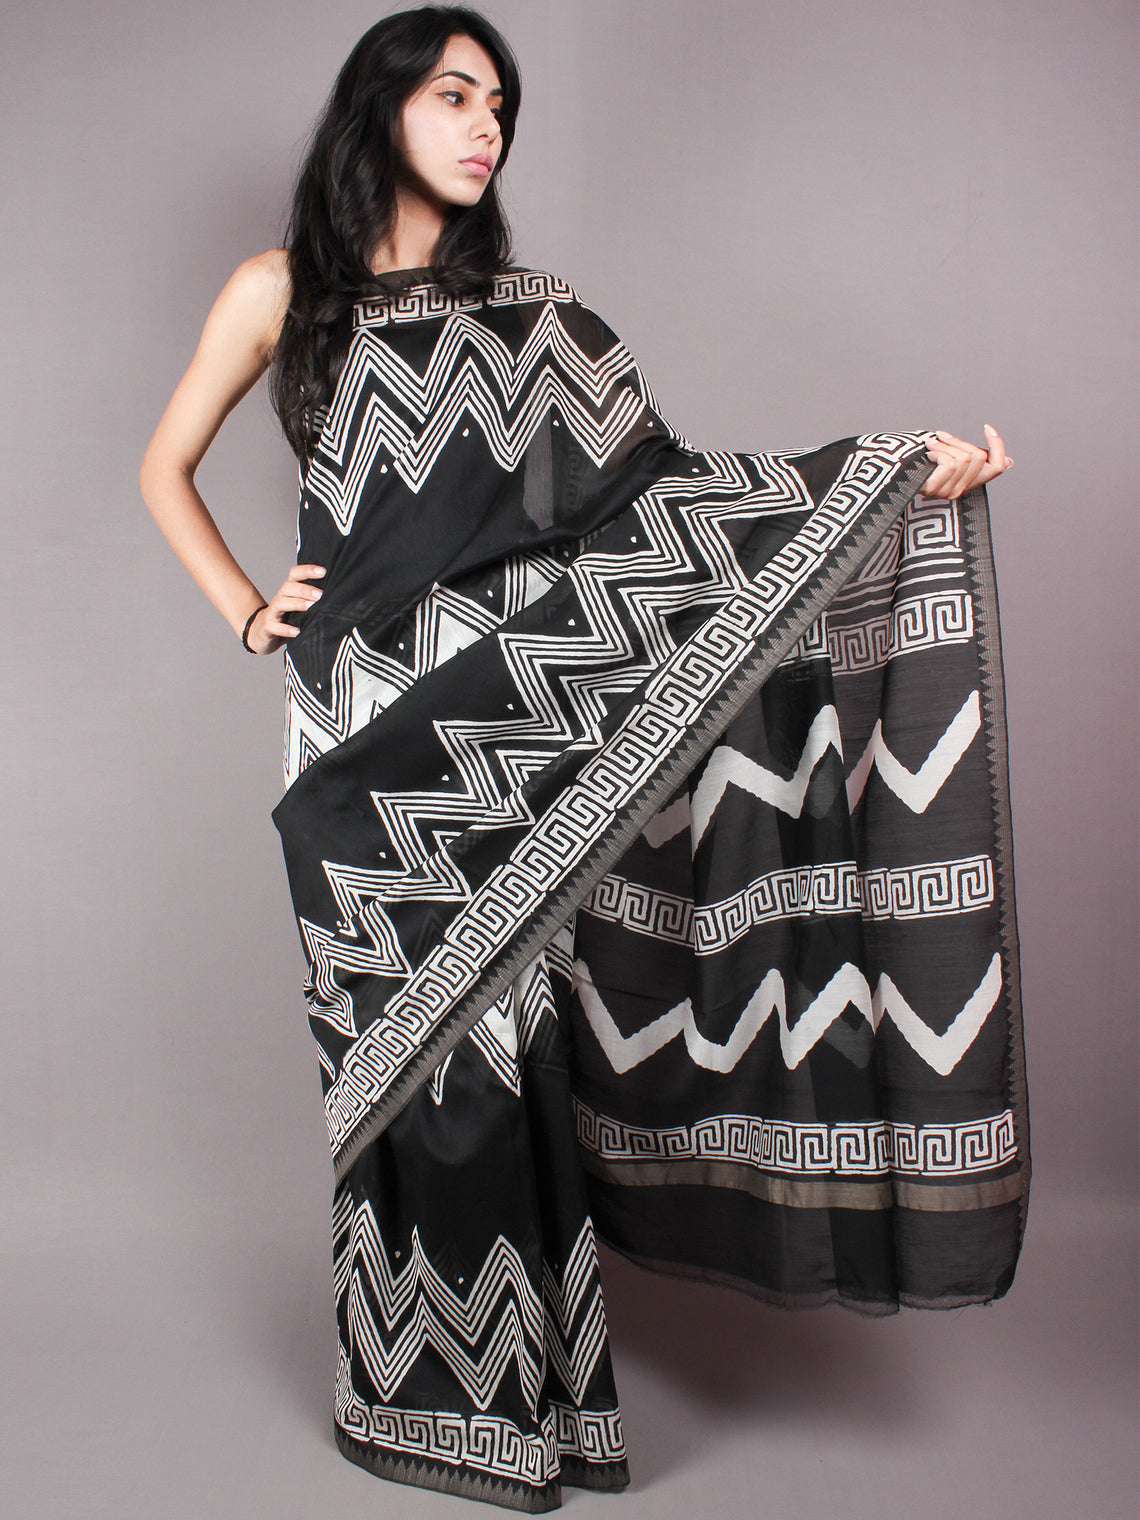 Black White Leharia Hand Block Printed in Natural Vegetable Colors Chanderi Saree With Geecha Border - S03170322